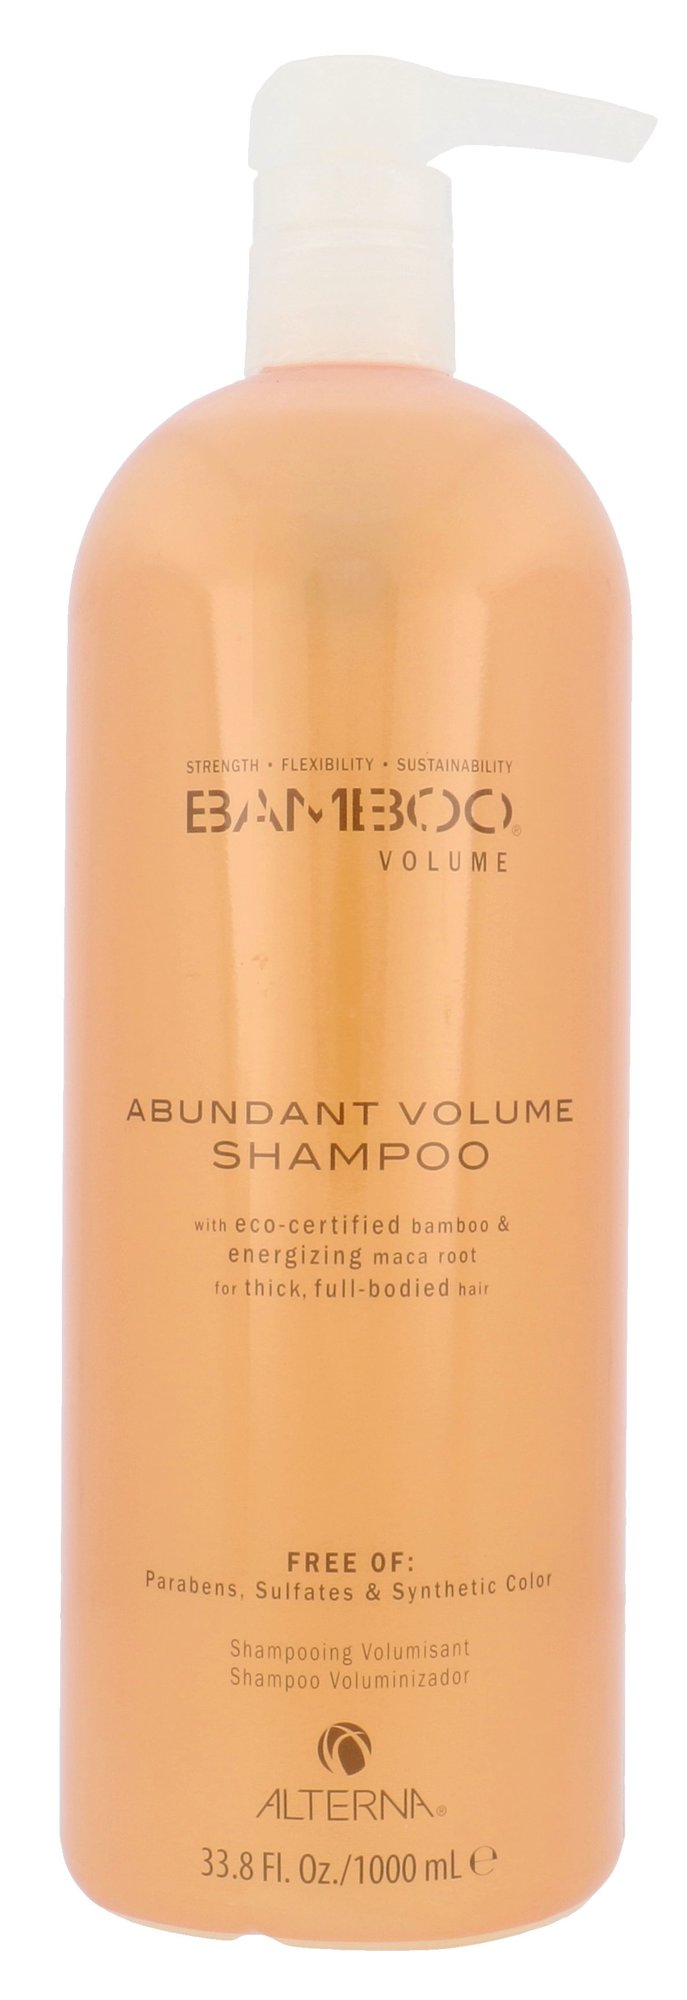 Alterna Bamboo Volume Cosmetic 1000ml